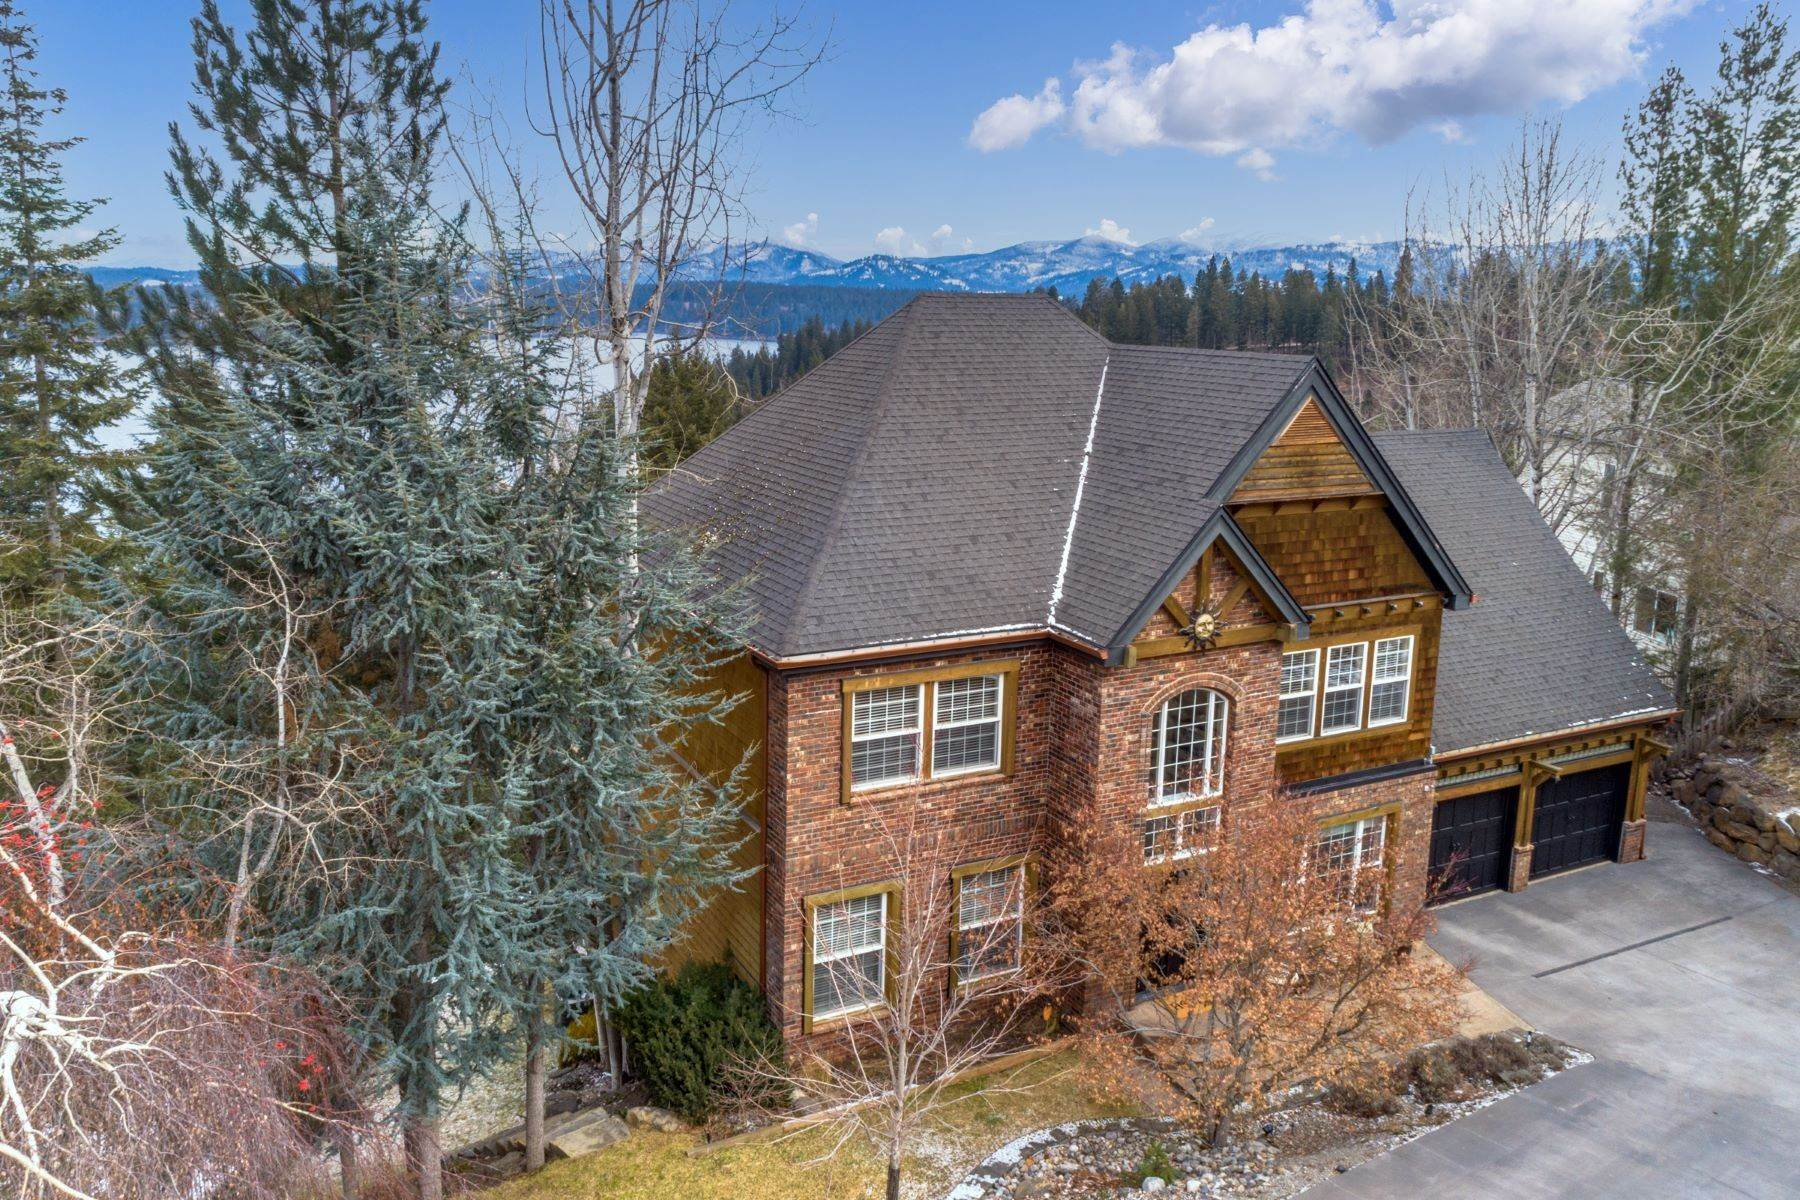 Single Family Homes for Sale at Hayden Lake views 3739 E Lookout Drive Coeur D Alene, Idaho 83815